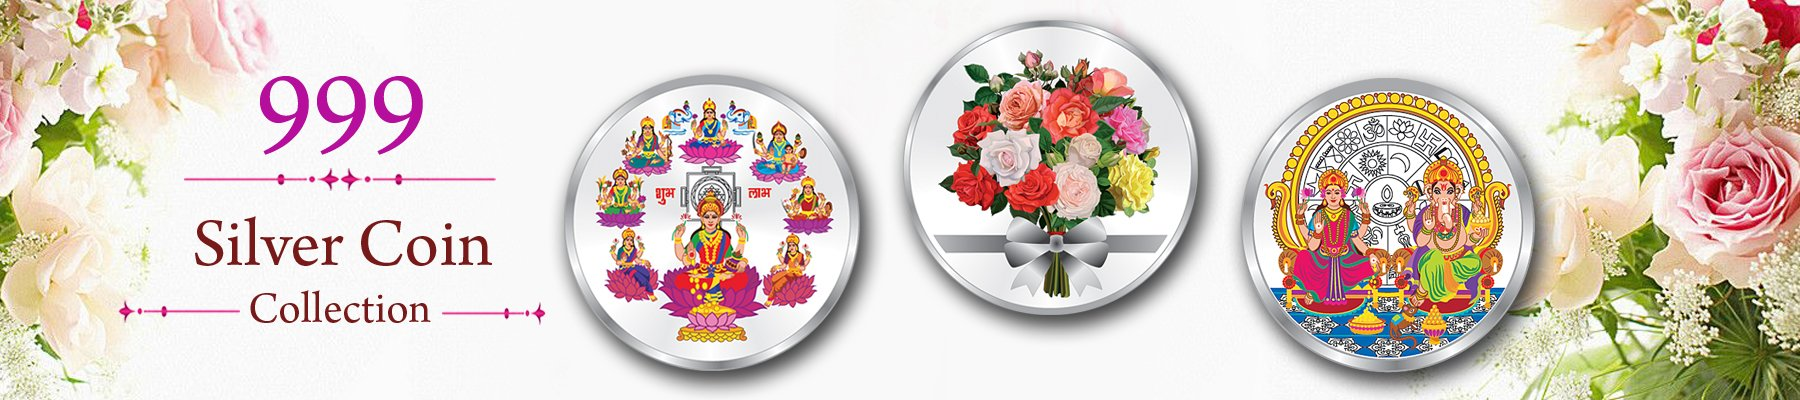 Taraash 999 Silver Coins Offer